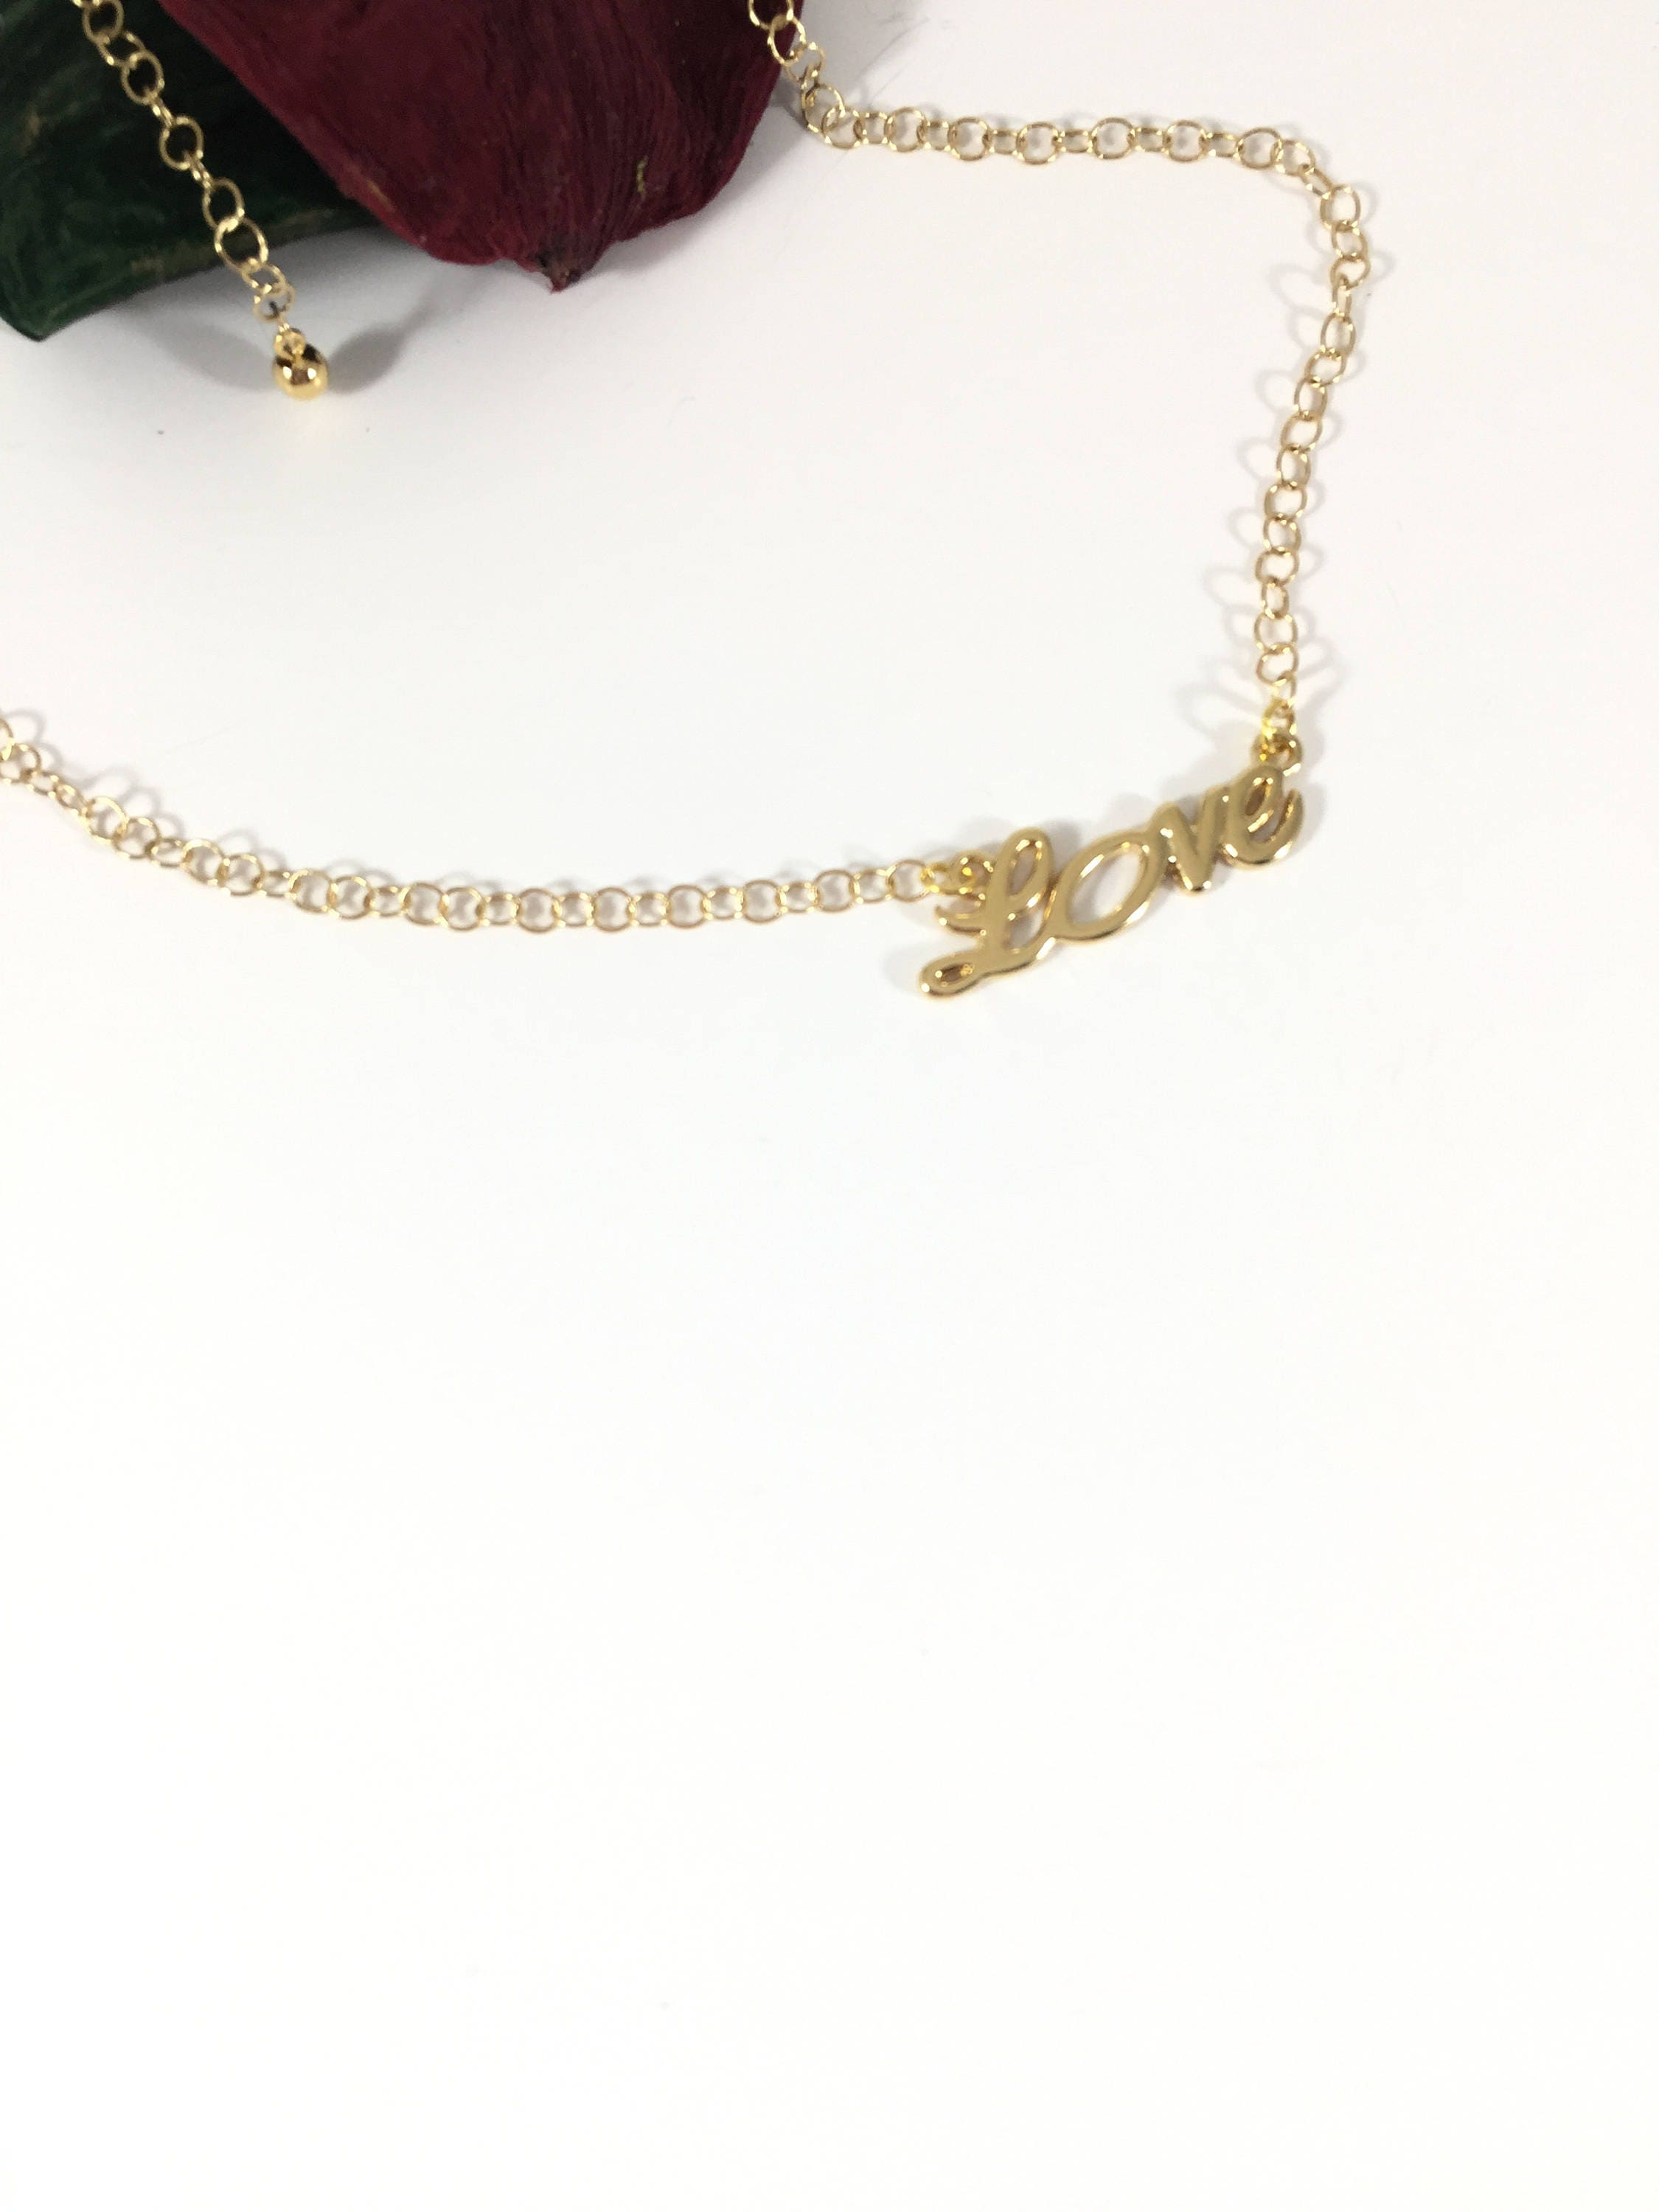 Handmade Necklace 14K Gold Plated Love Charm Jewelry Lovers Handmade Jewelry Gift For Her